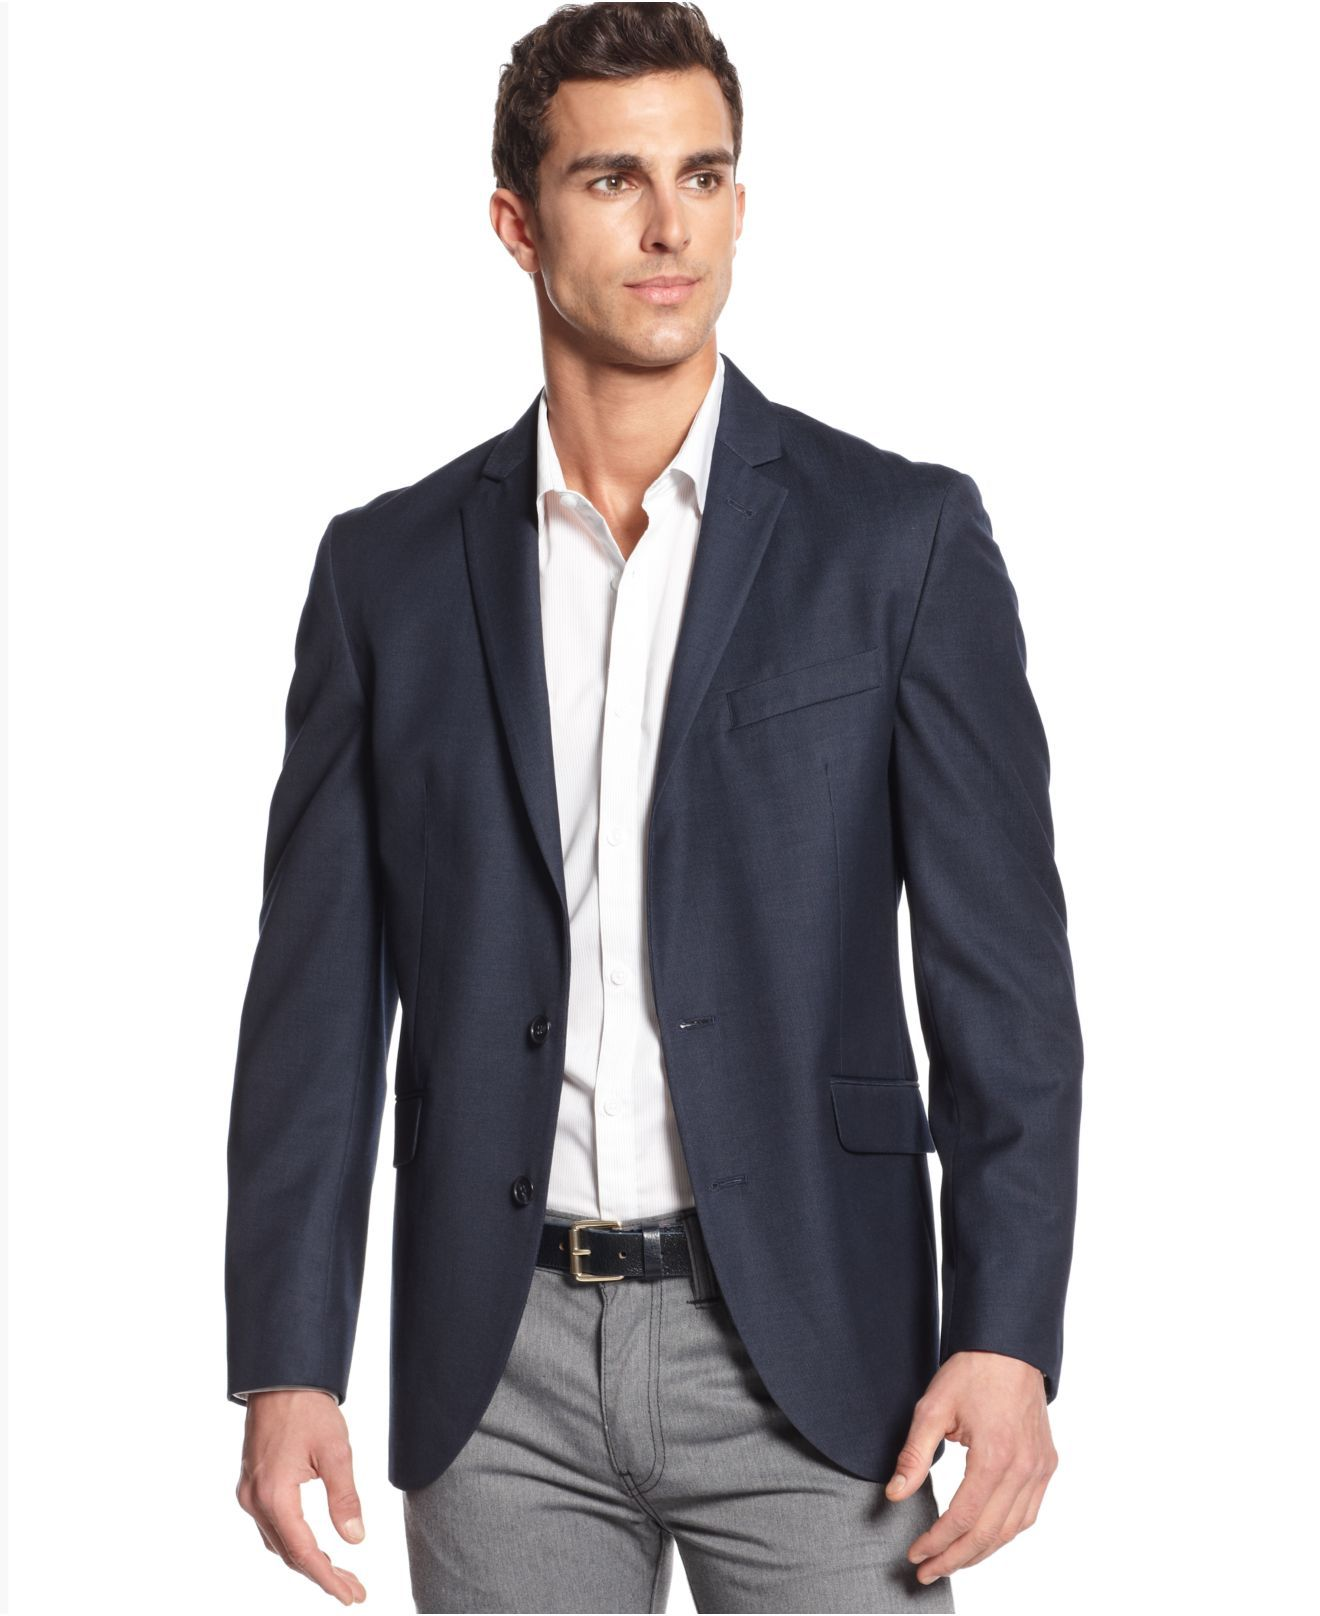 Navy Sport Coat Google Search Navy Sport Coat Blue